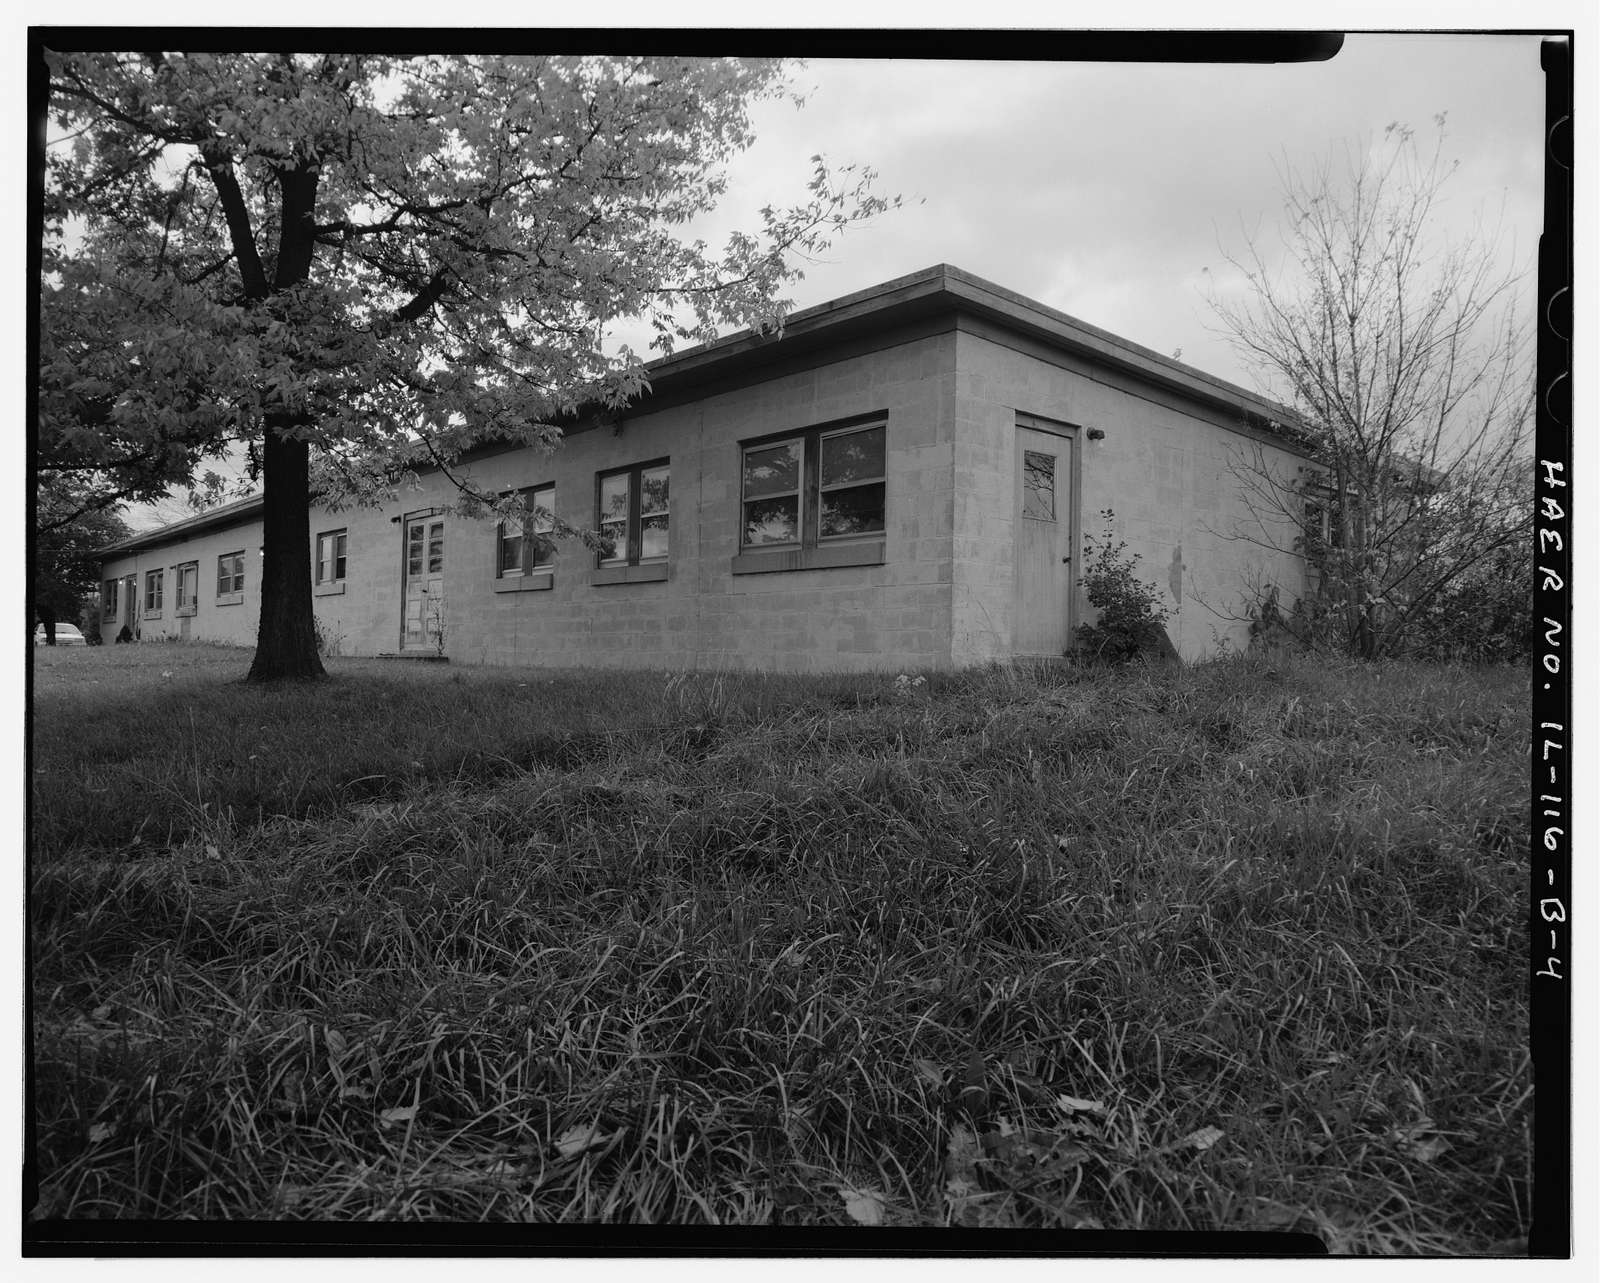 NIKE Missile Base C-84, Administration Building, North of Launch Area Entrance Drive, Barrington, Cook County, IL